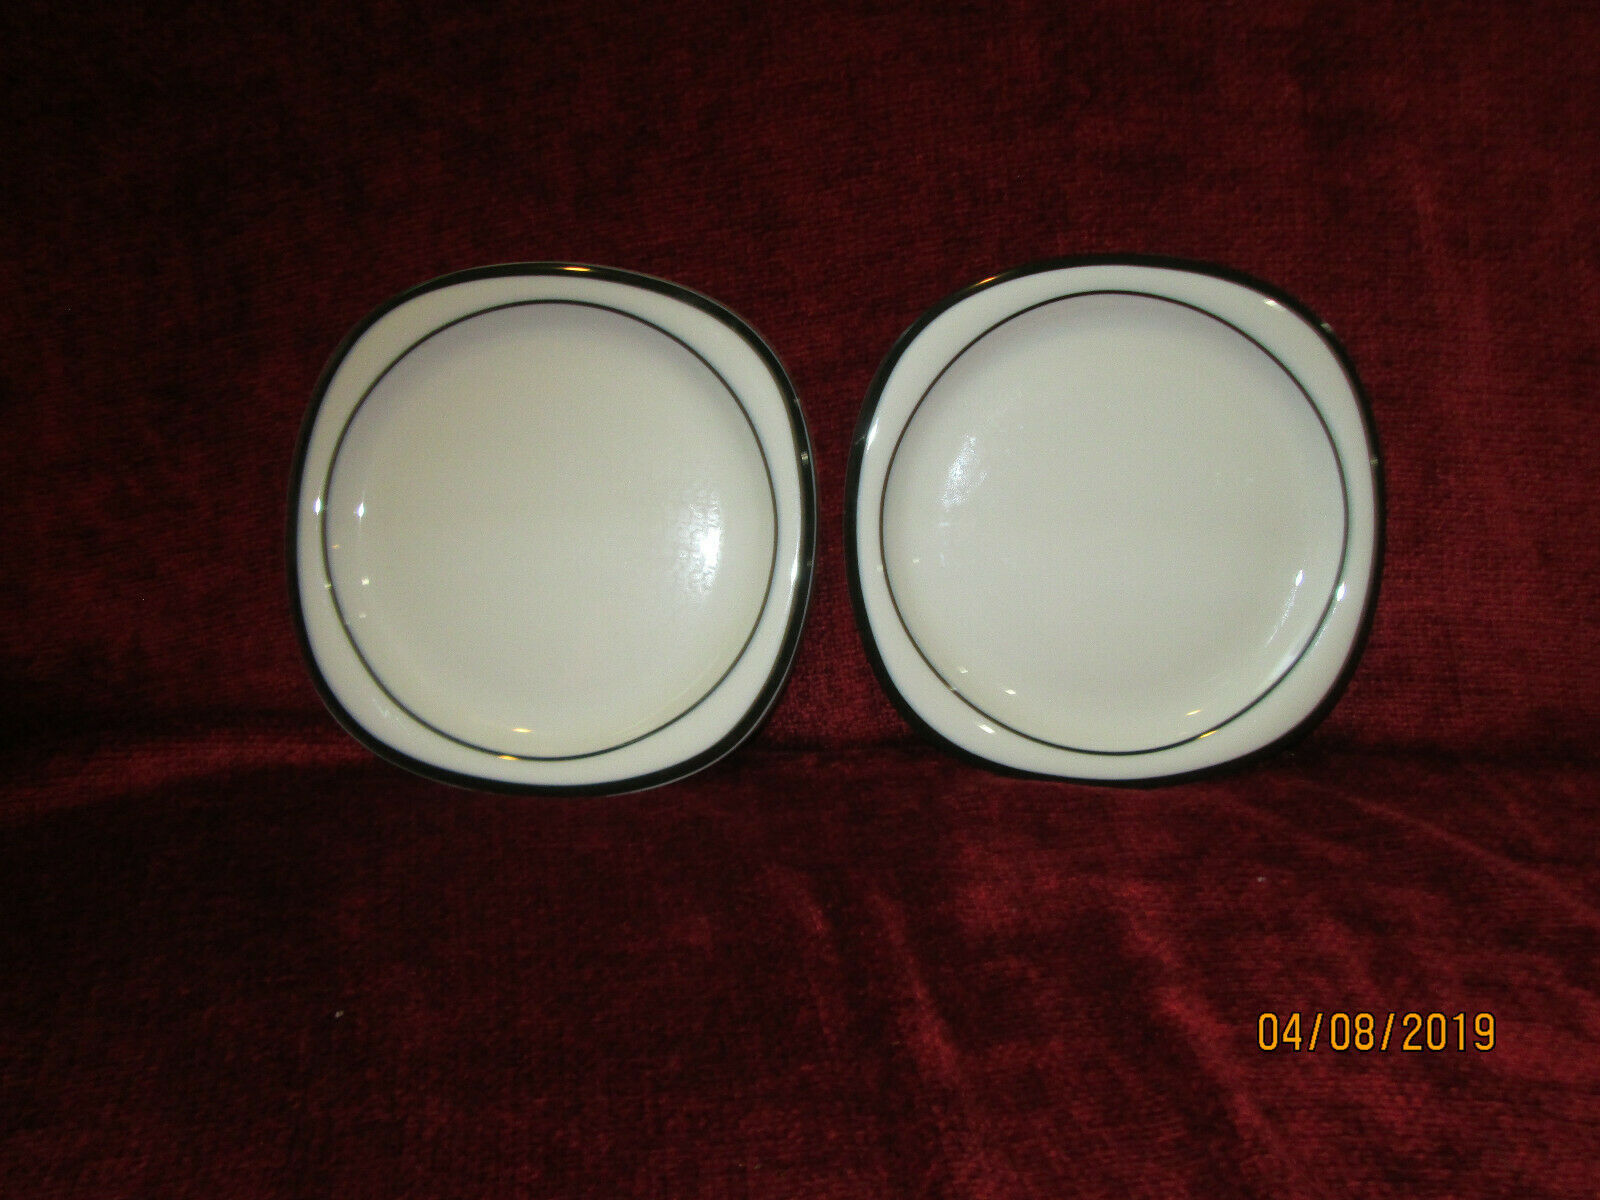 Primary image for ROSENTHAL CONCEPT 5 ANTHRACITE black set of 2 bread plates 6 1/4""